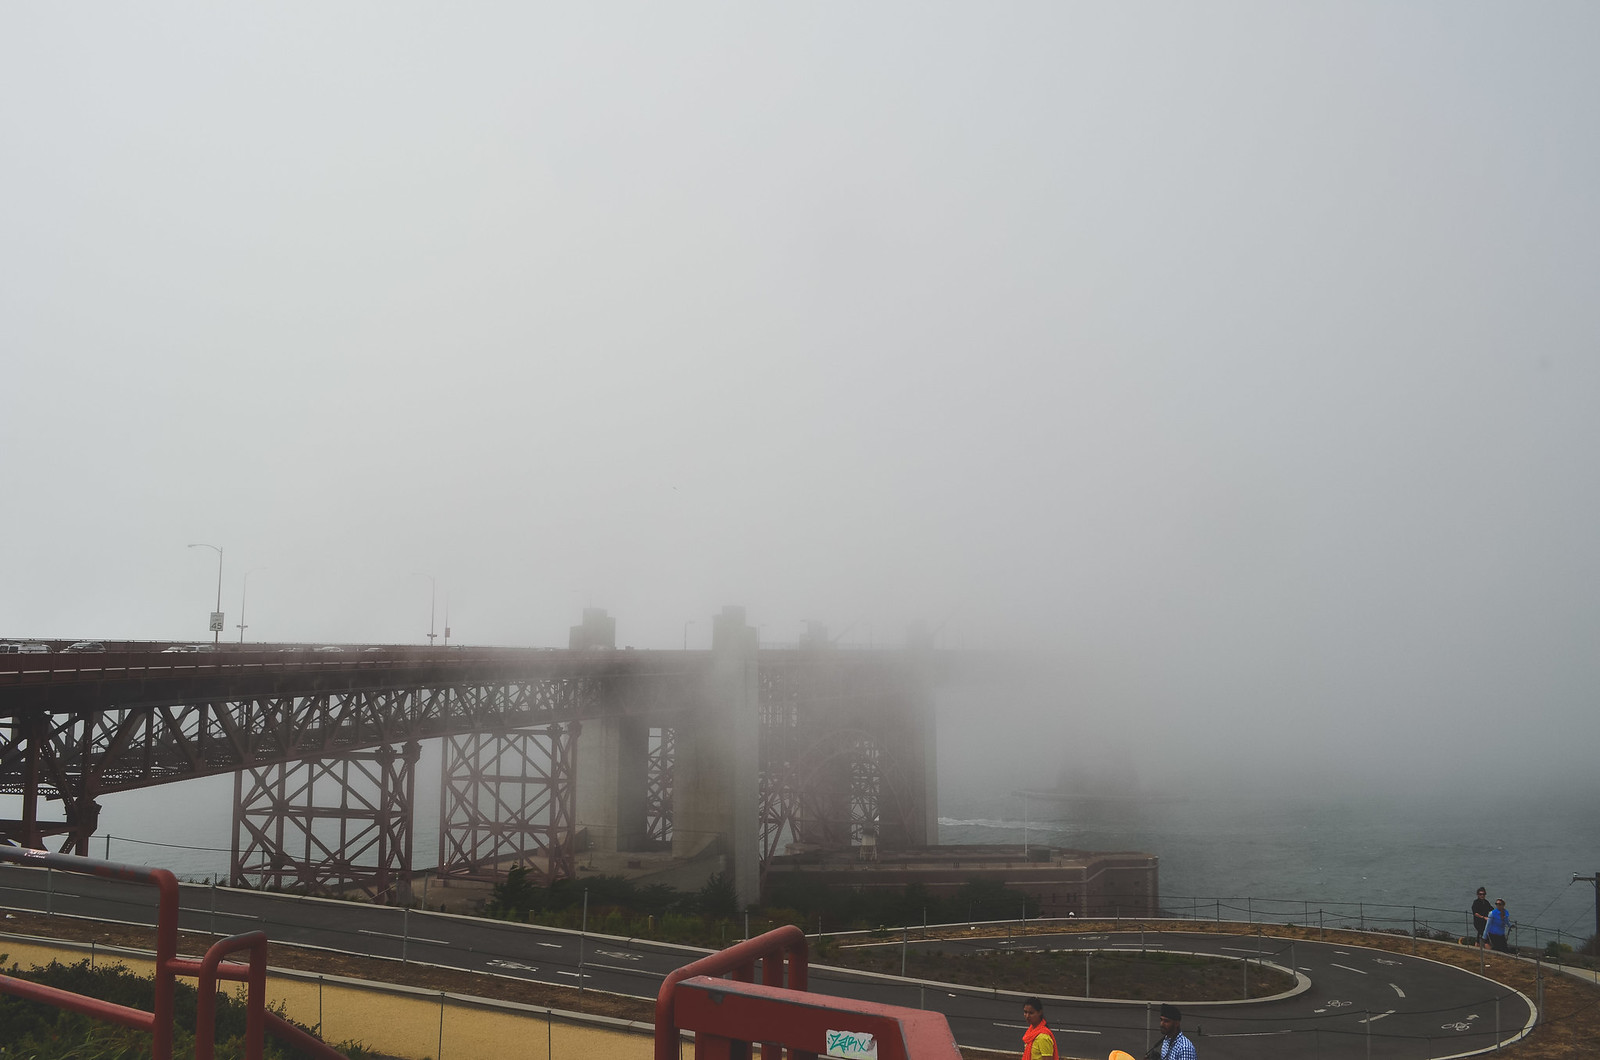 Fog + mysterious Golden Gate Bridge